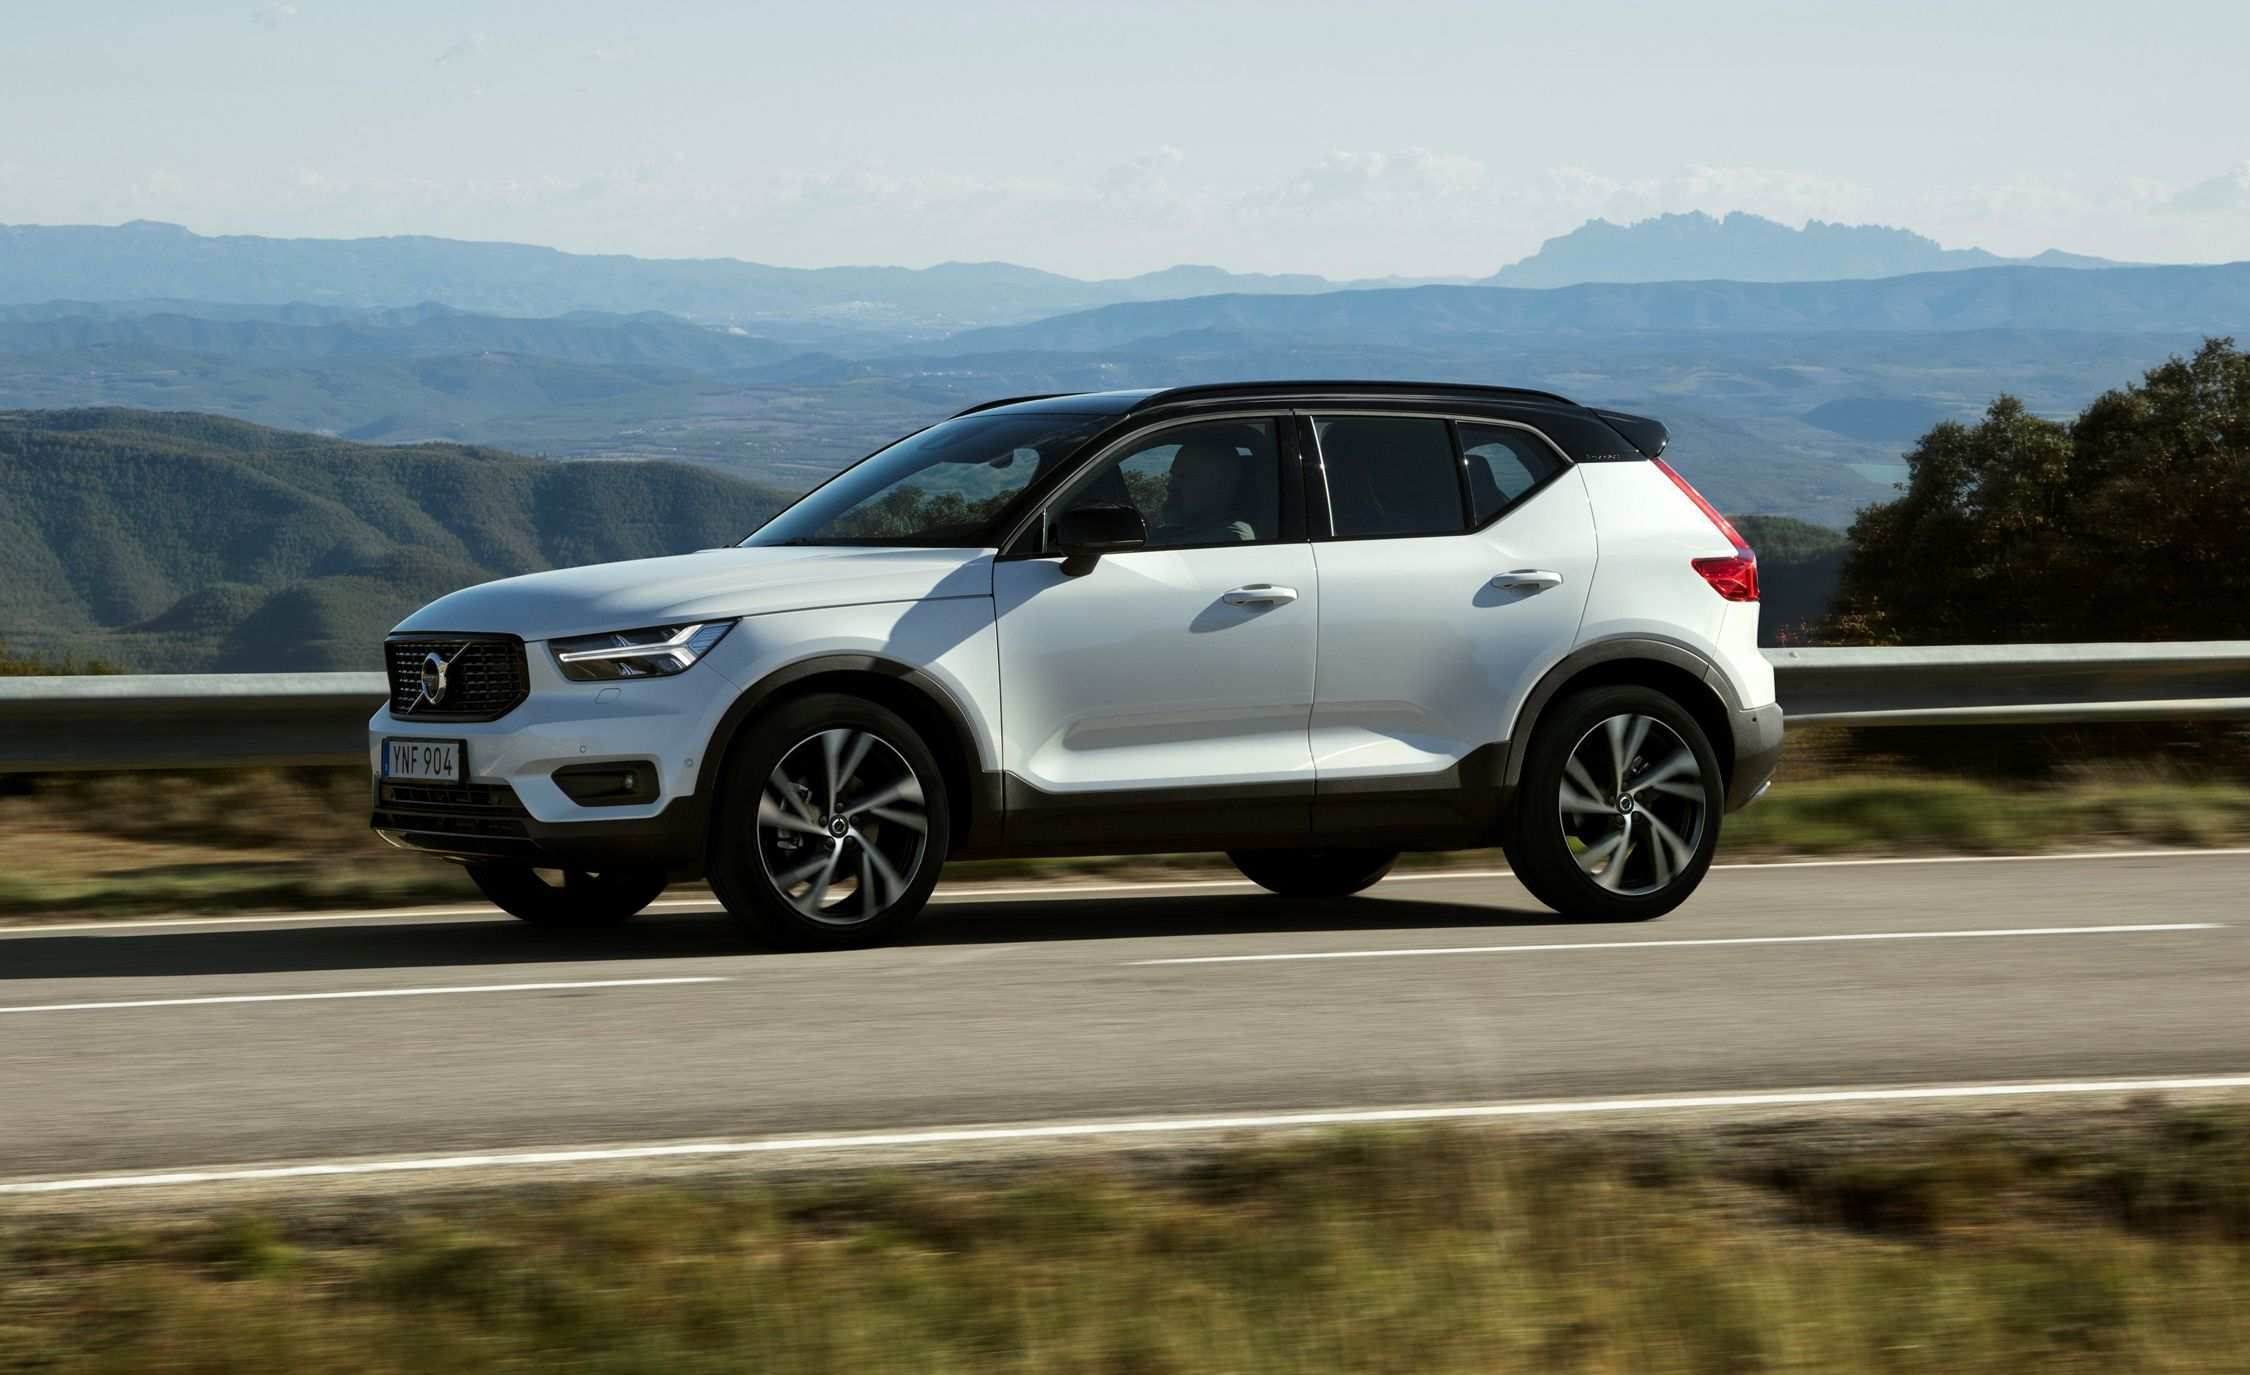 99 Gallery of The Volvo Suv 2019 First Drive Overview with The Volvo Suv 2019 First Drive